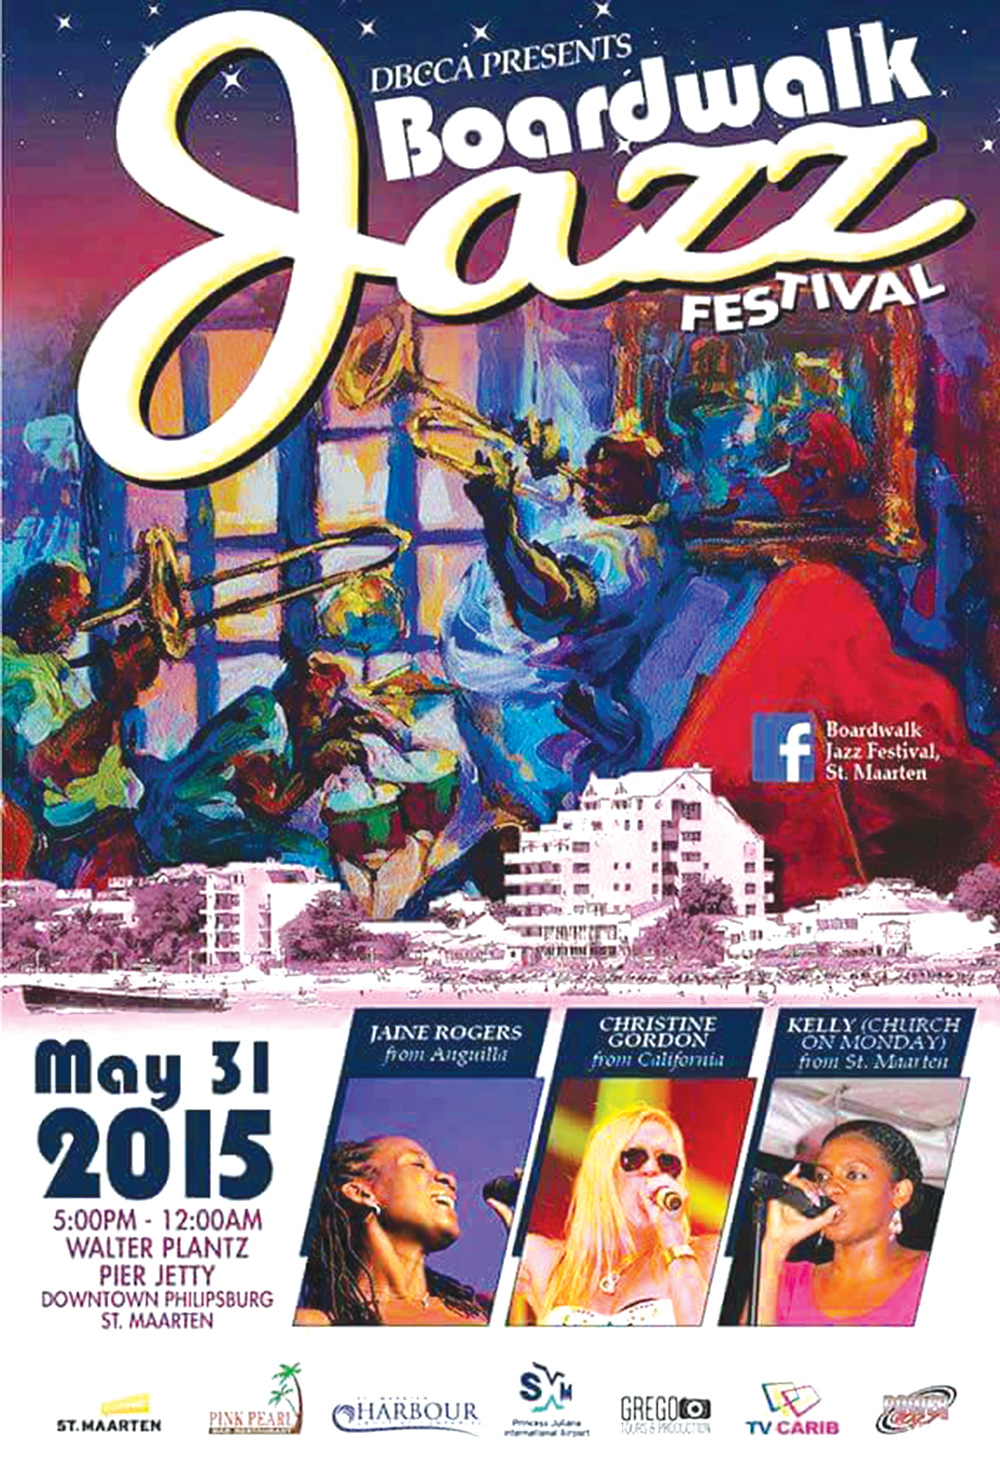 St Maarten Boardwalk Jazz Festival Sunday May 31 2015